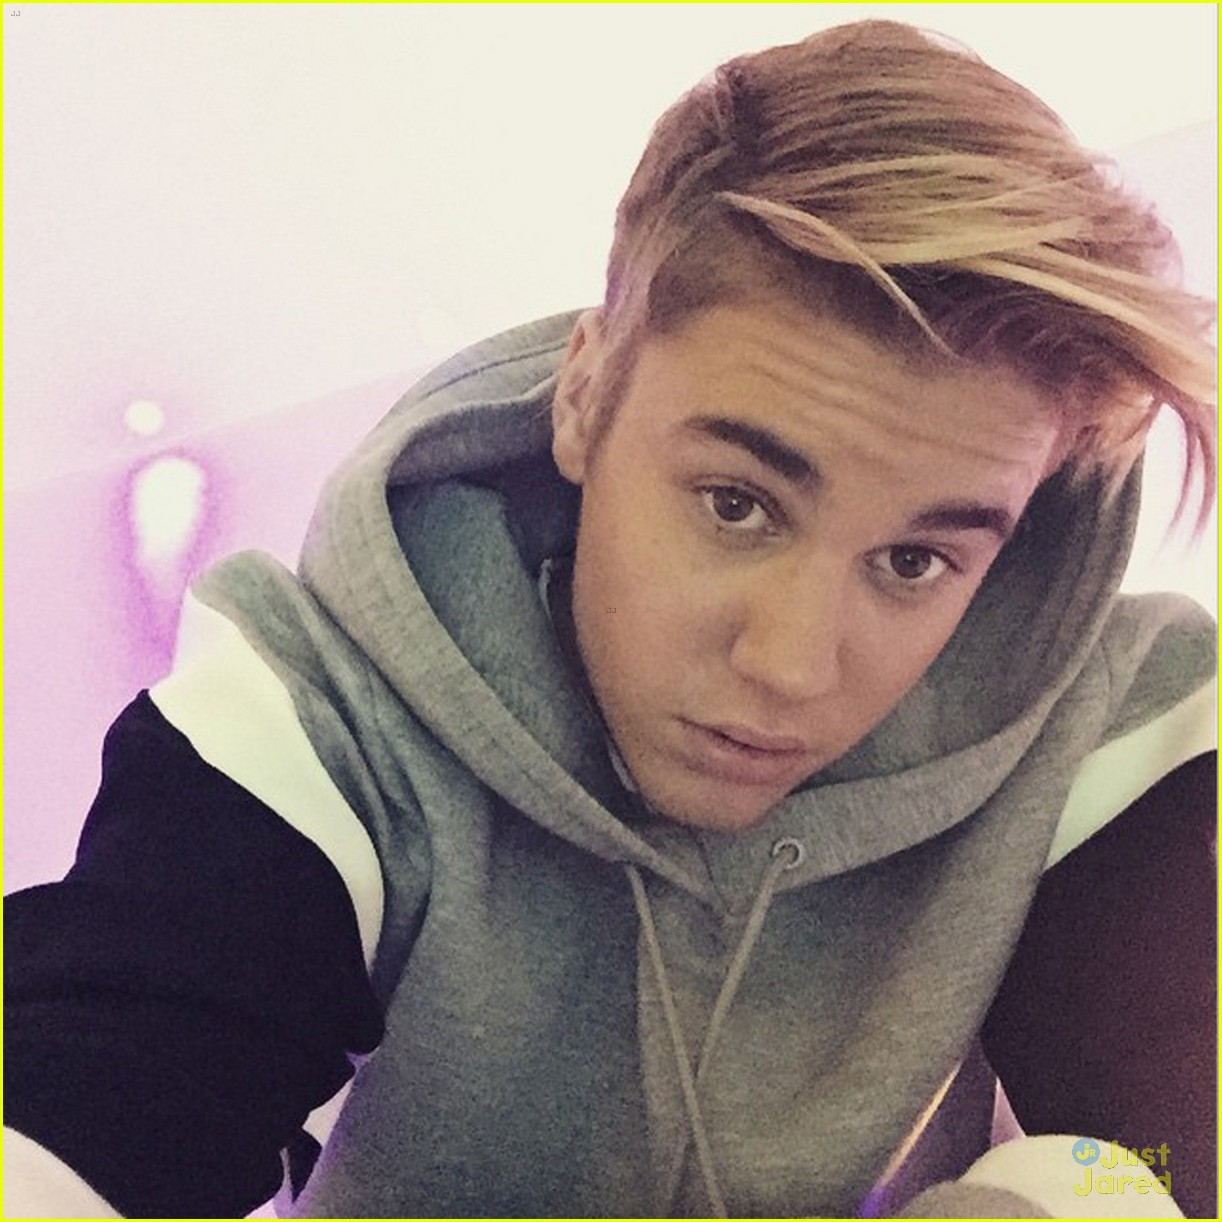 Justin Bieber Flaunts His New Hair Style On Instagram Photo